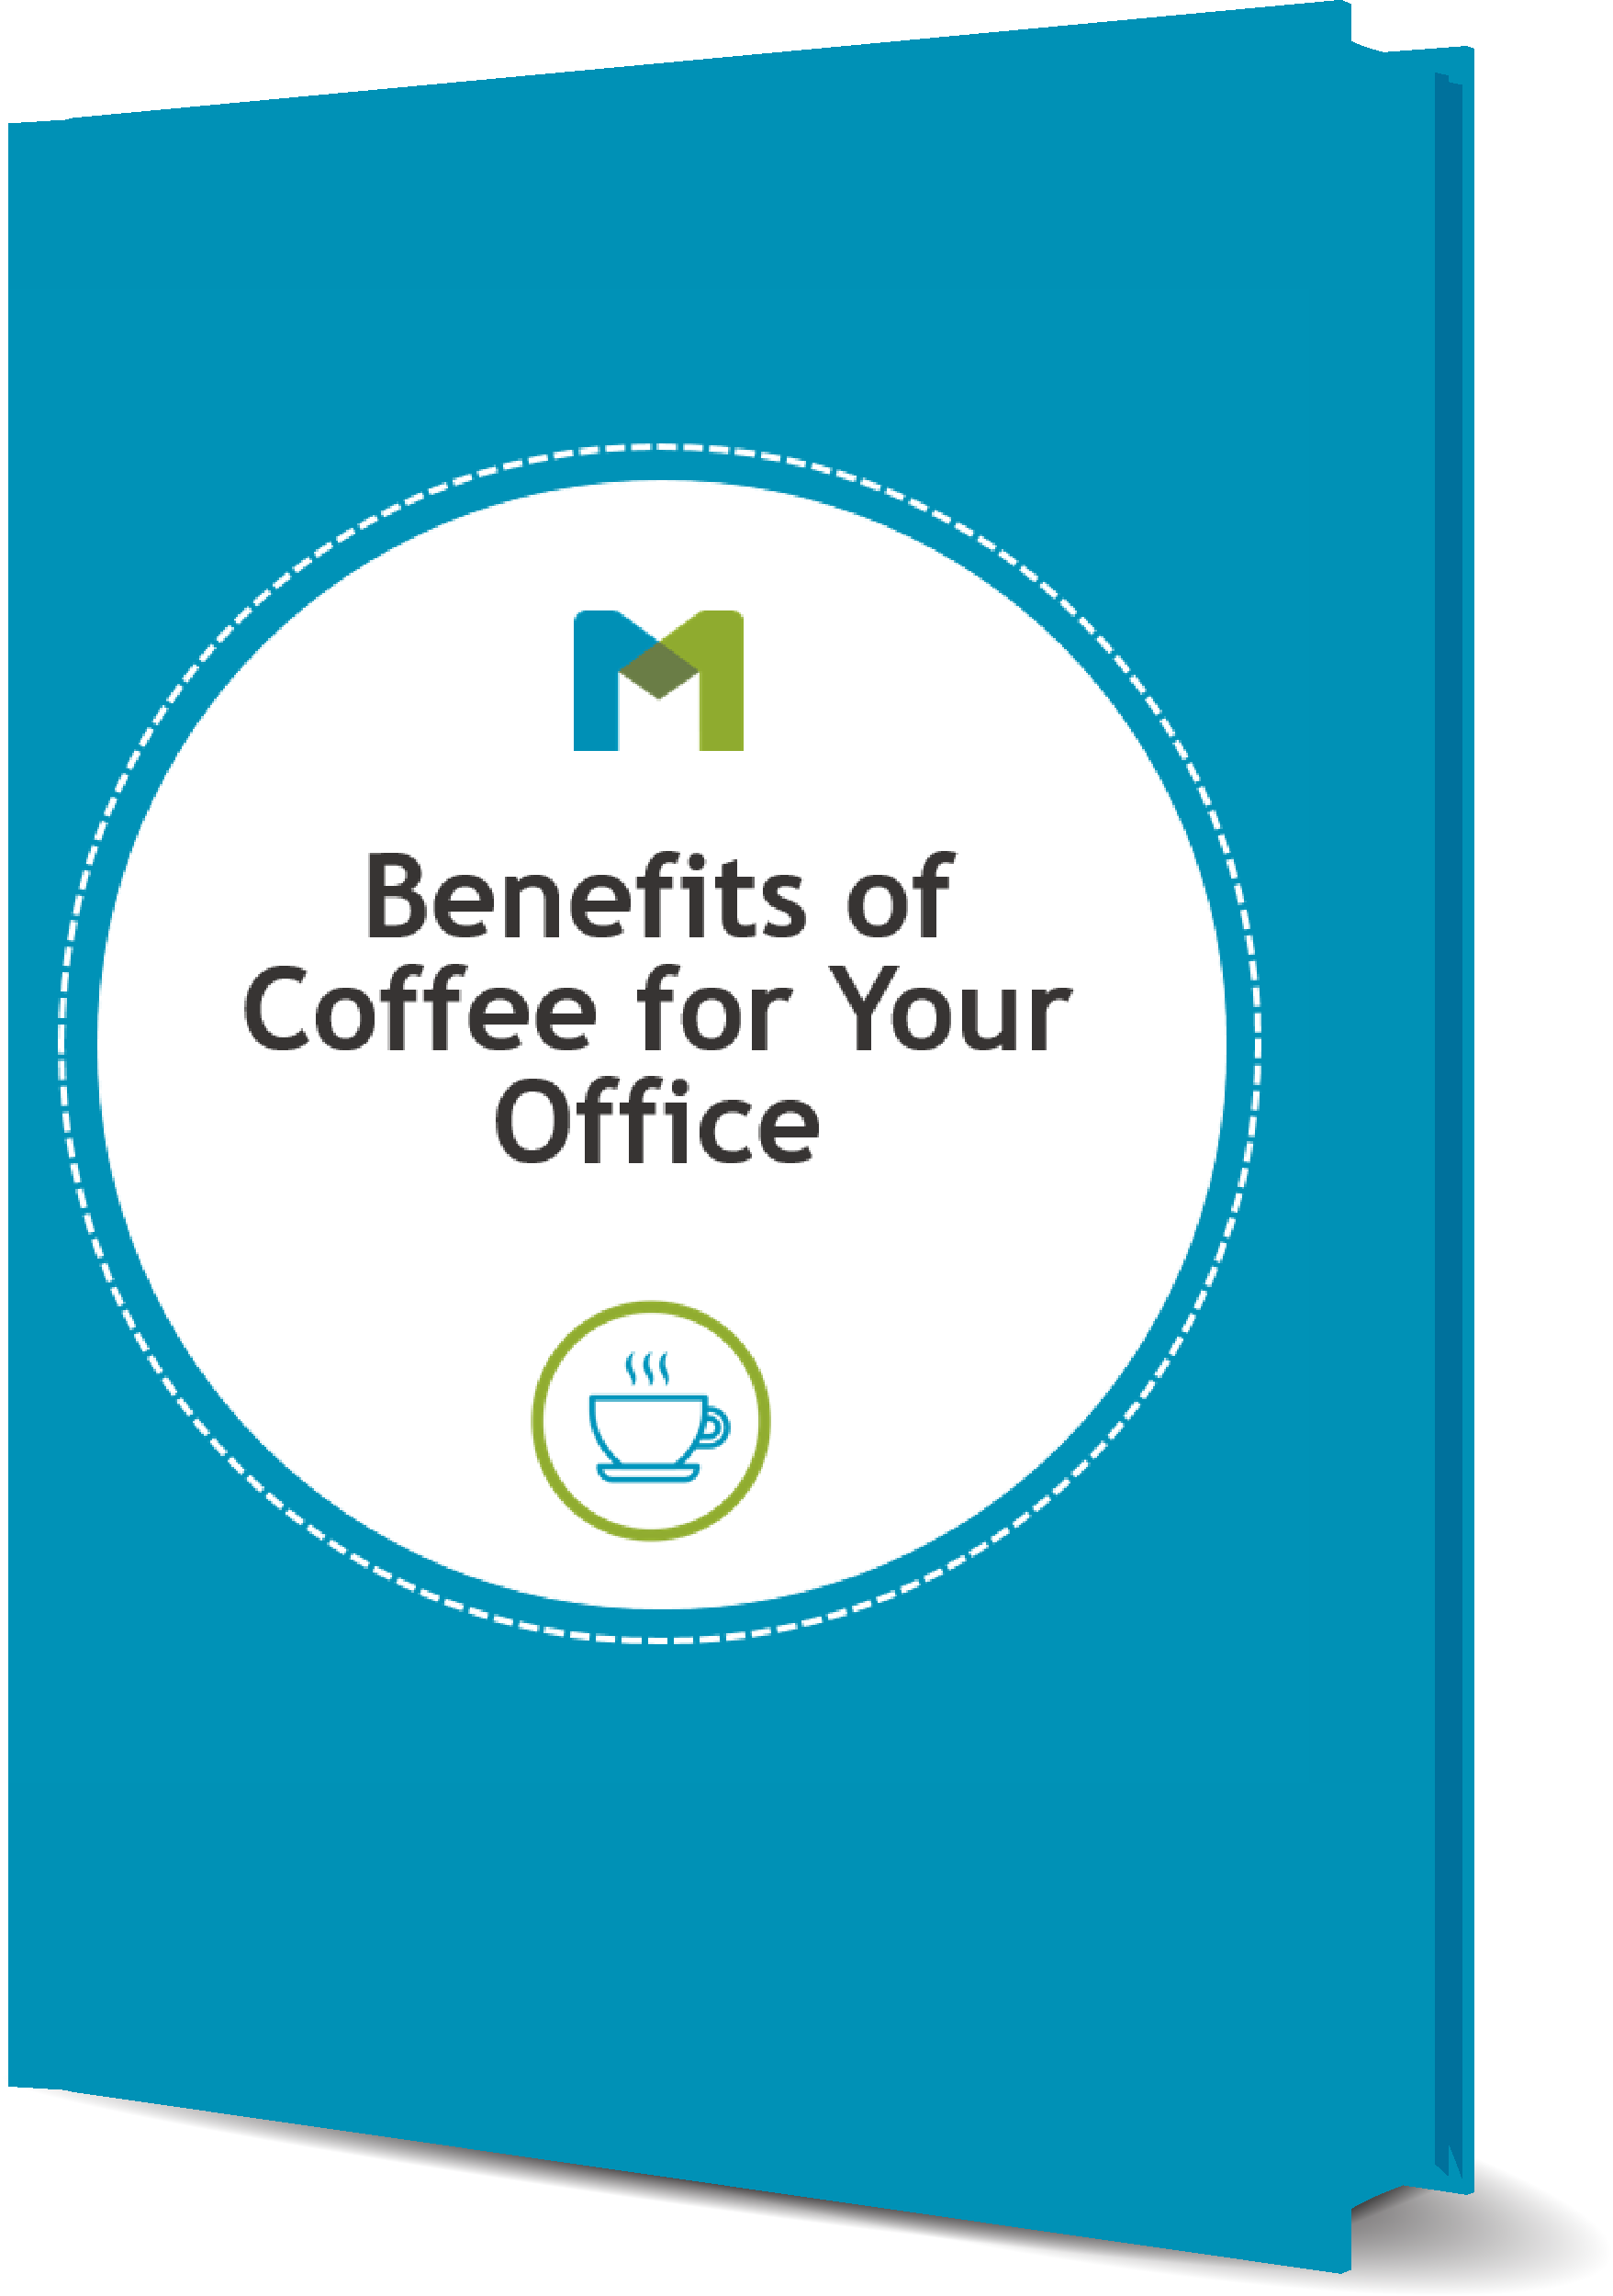 Benefits of Coffee For Your Office